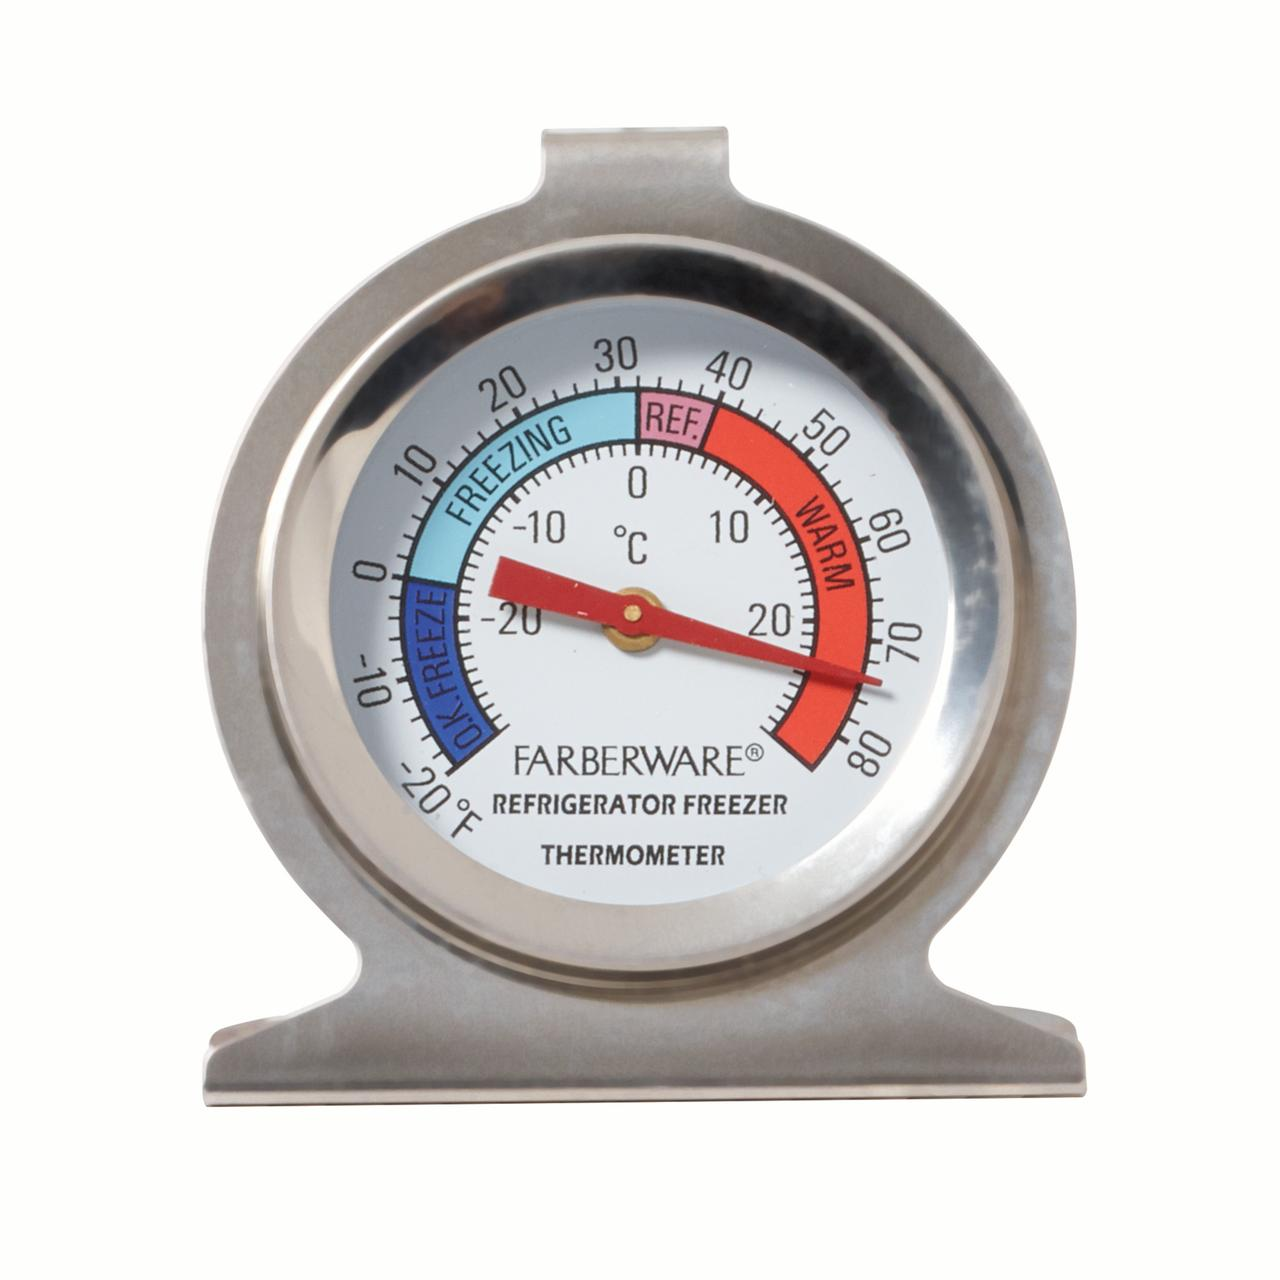 Farberware Protek Refrigerator Thermometer With Easy Read Display